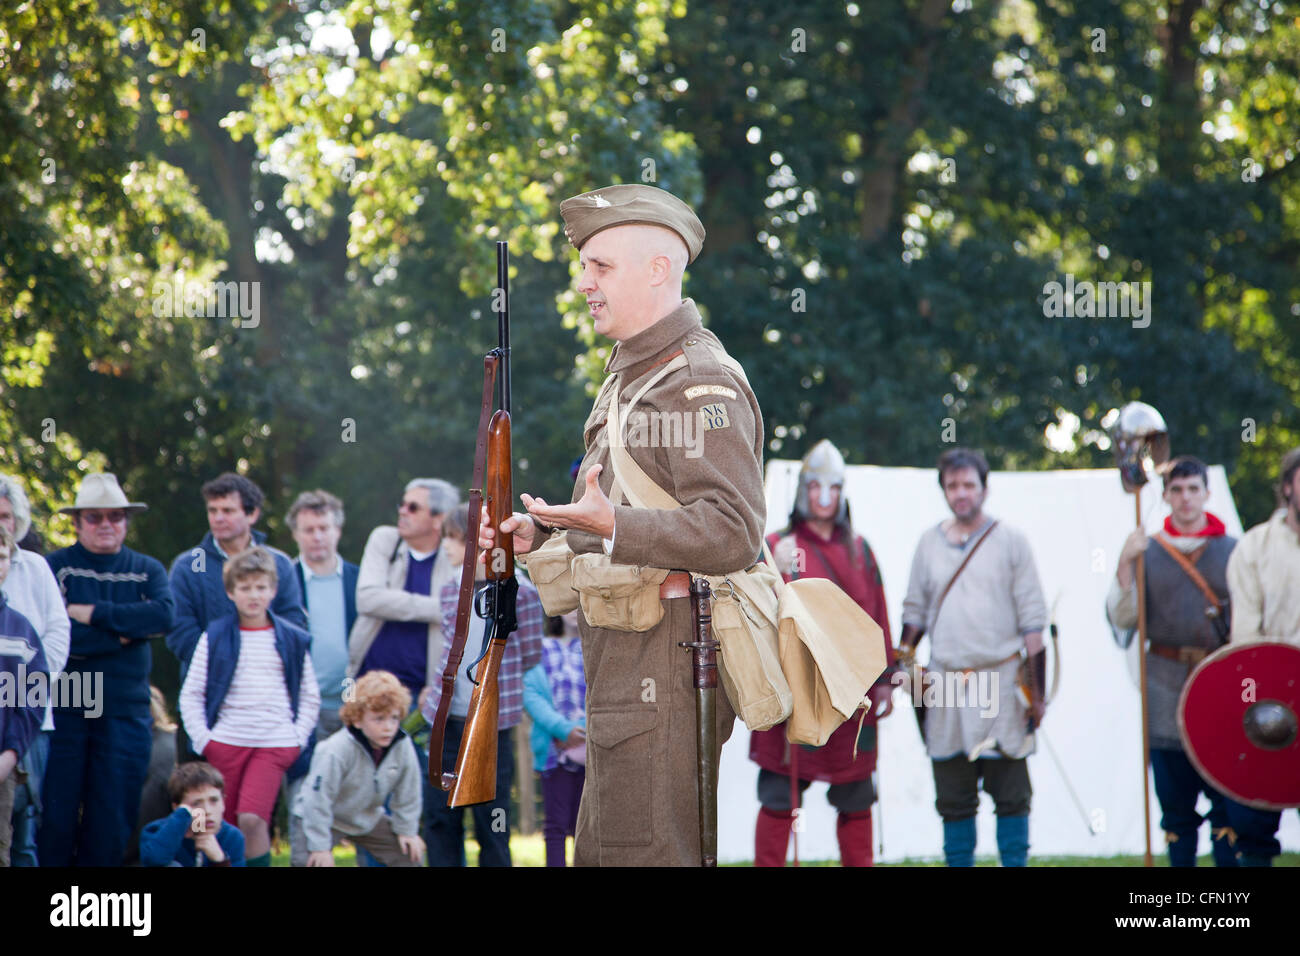 Demonstration Demonstration of a Henry Martini Shotgun used by British army in second world war - Stock Image